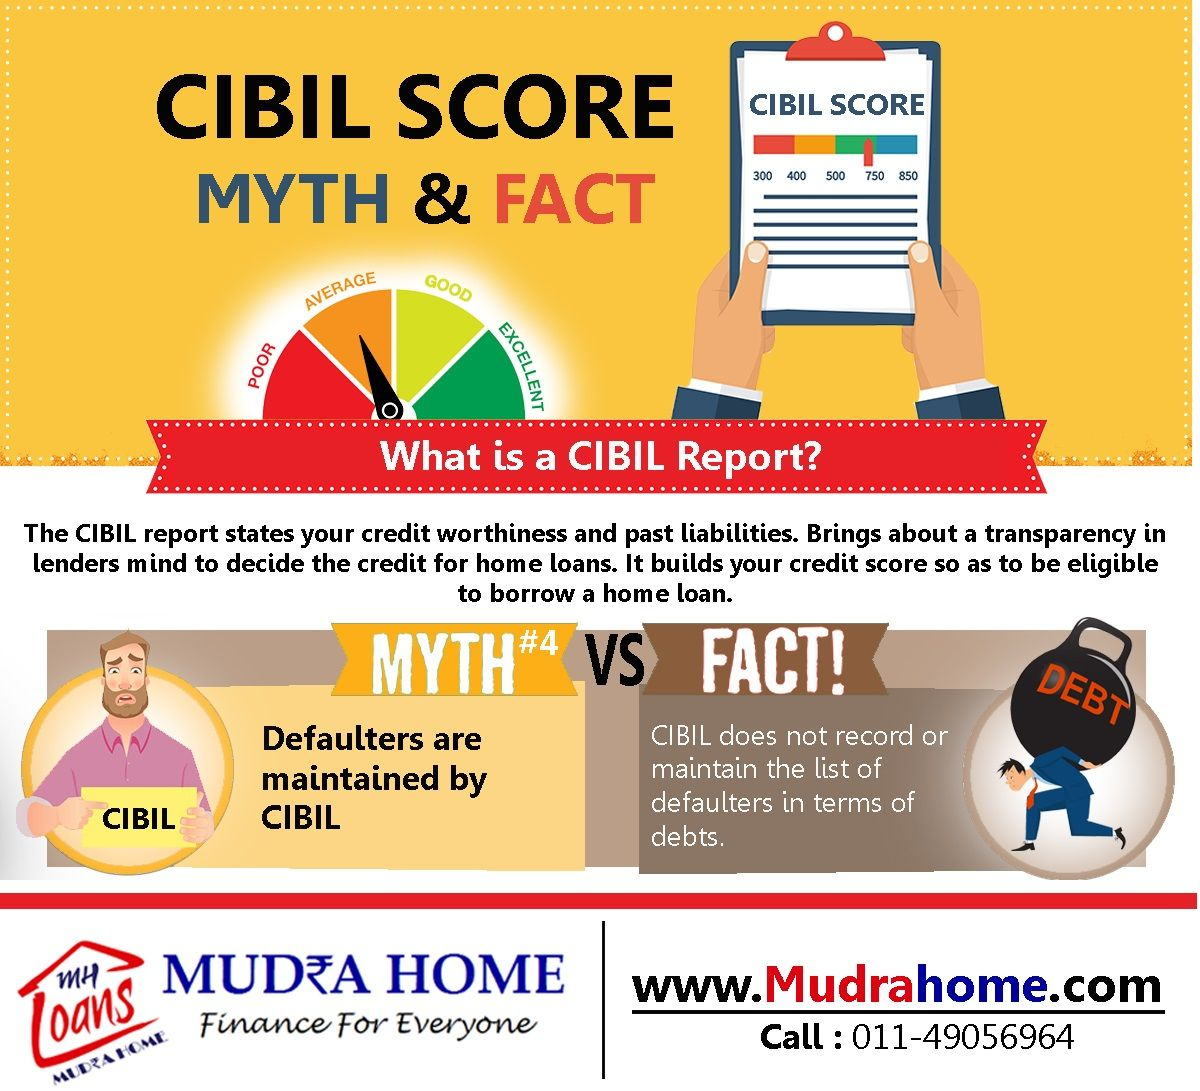 Forth Myth Fact Of Cibil Score Follow For More Space Www Mudrahome Com Instant Loans Online Personal Loans Business Loans